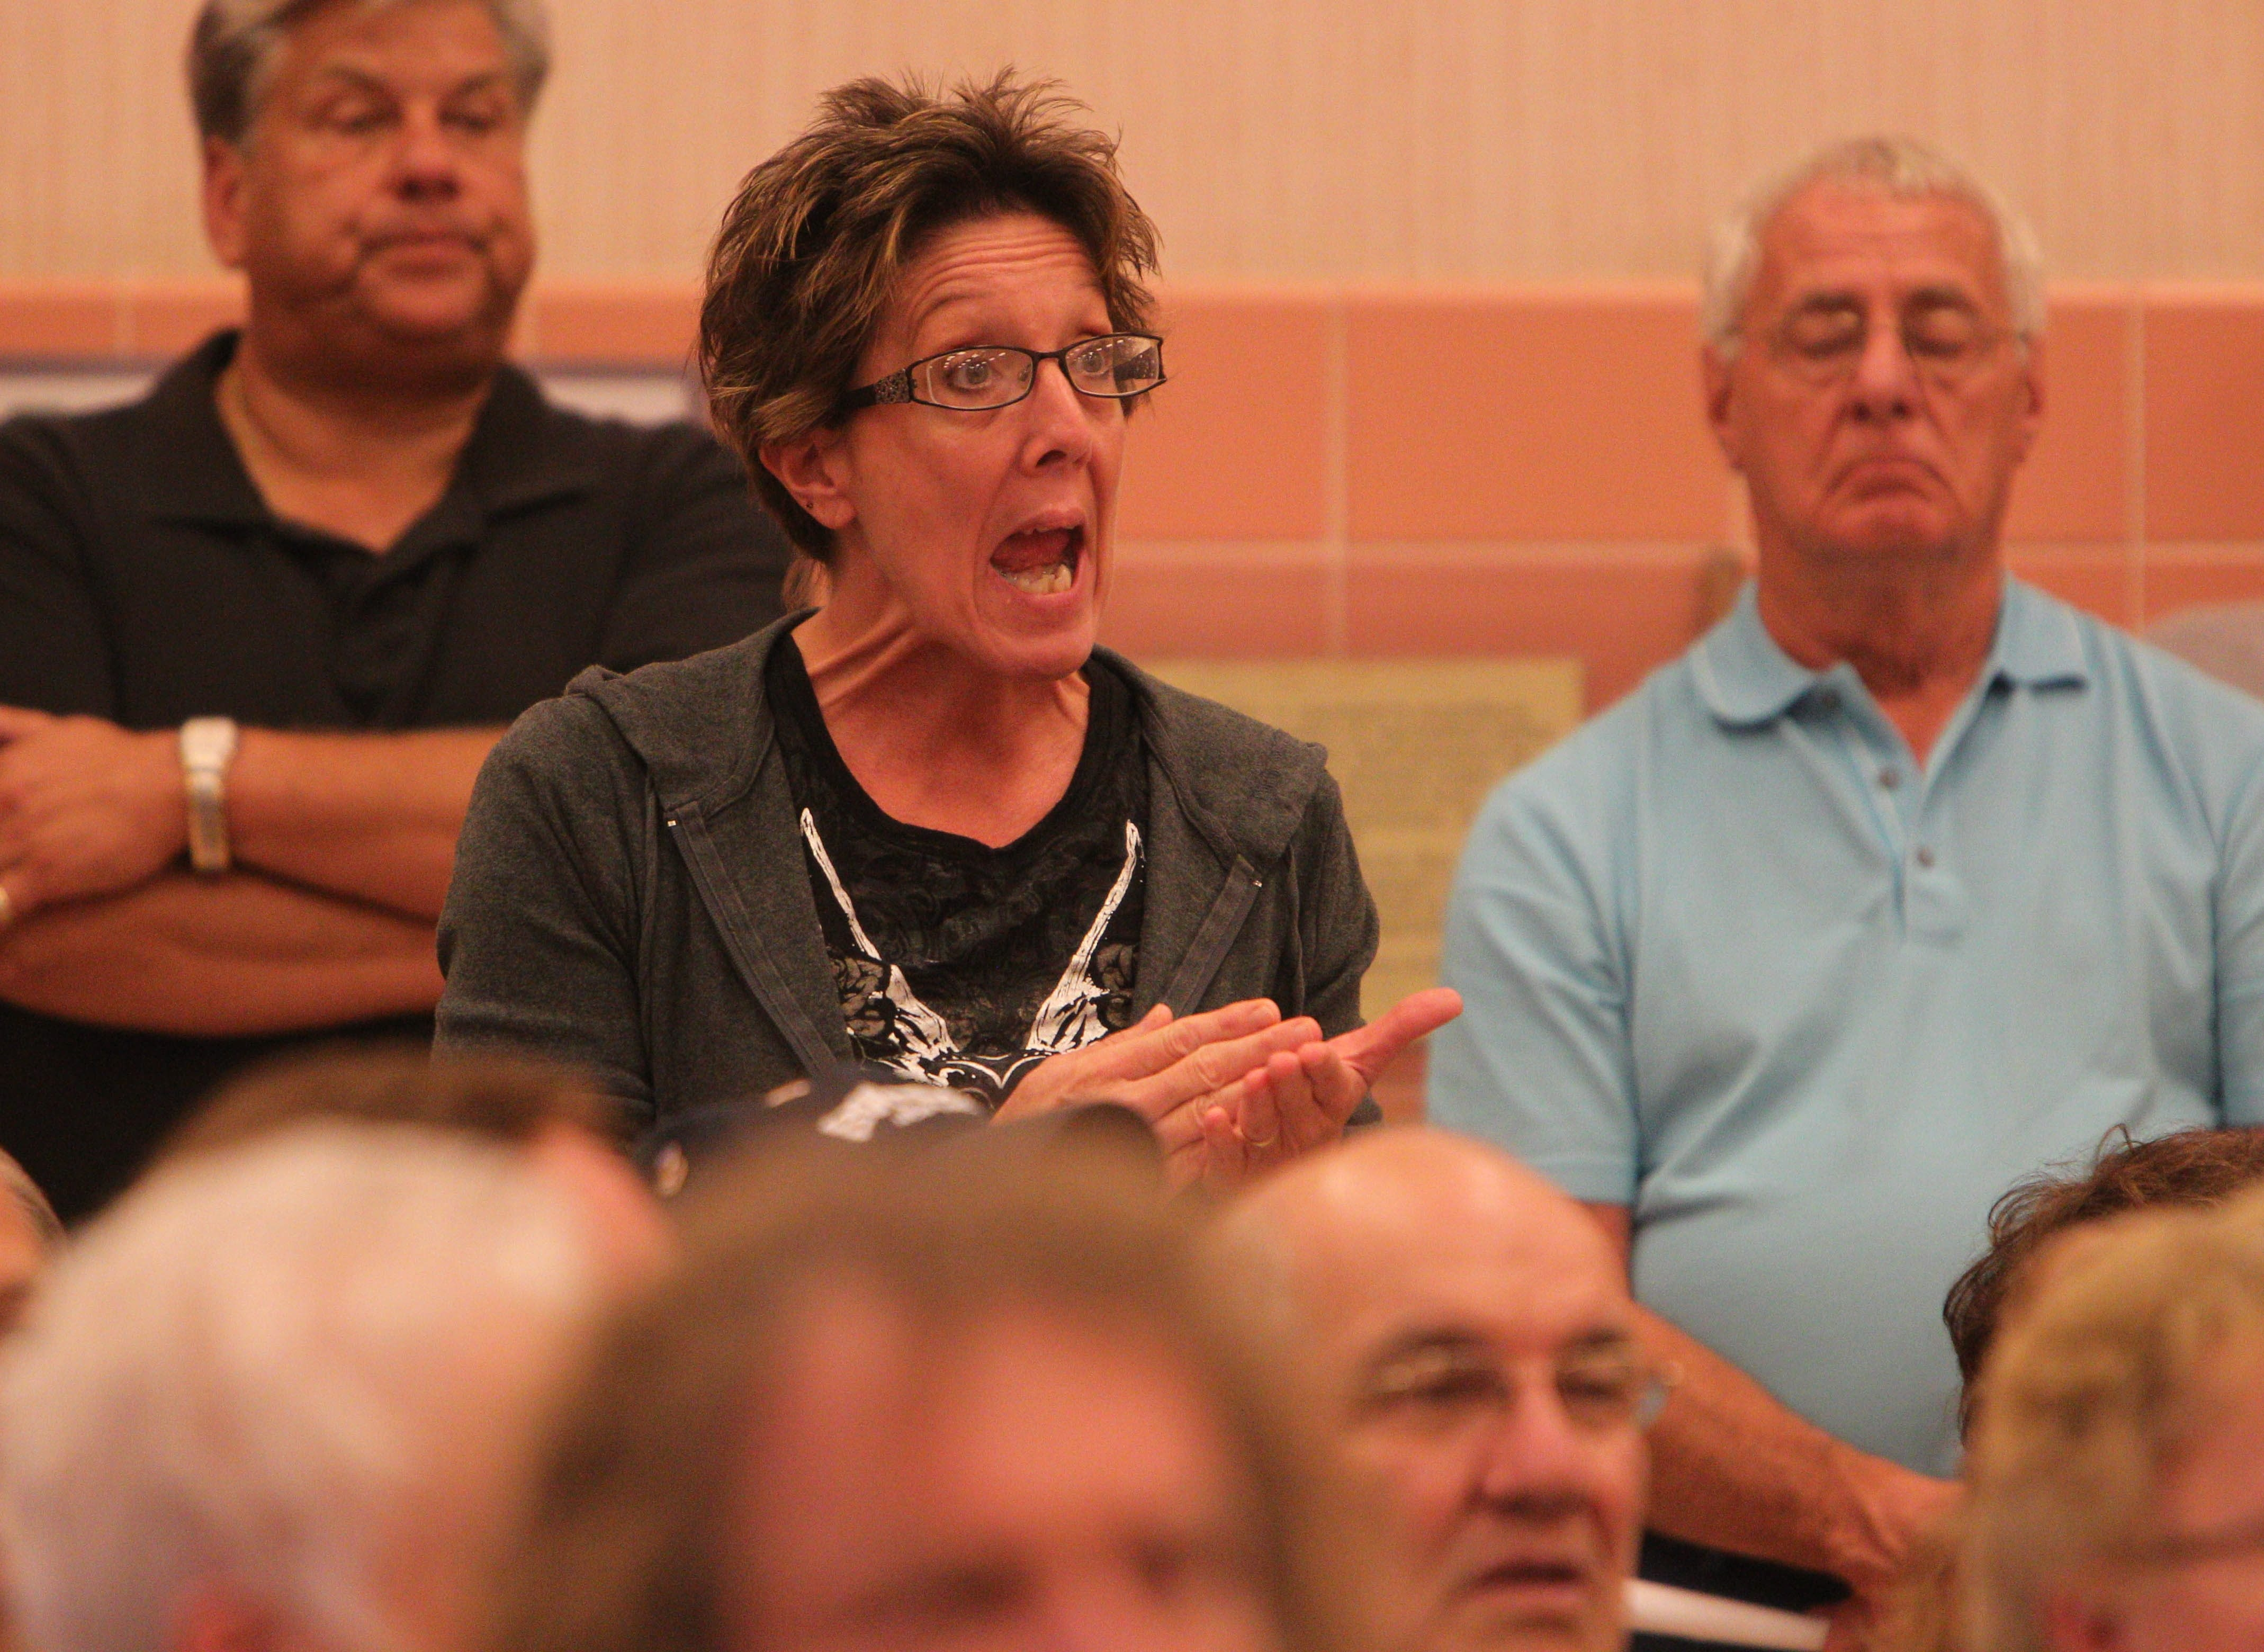 Cheektowaga resident Cheryl Lockhart expresses opposition to a plan to convert property assessments in the town to full market value in a meeting Thursday.